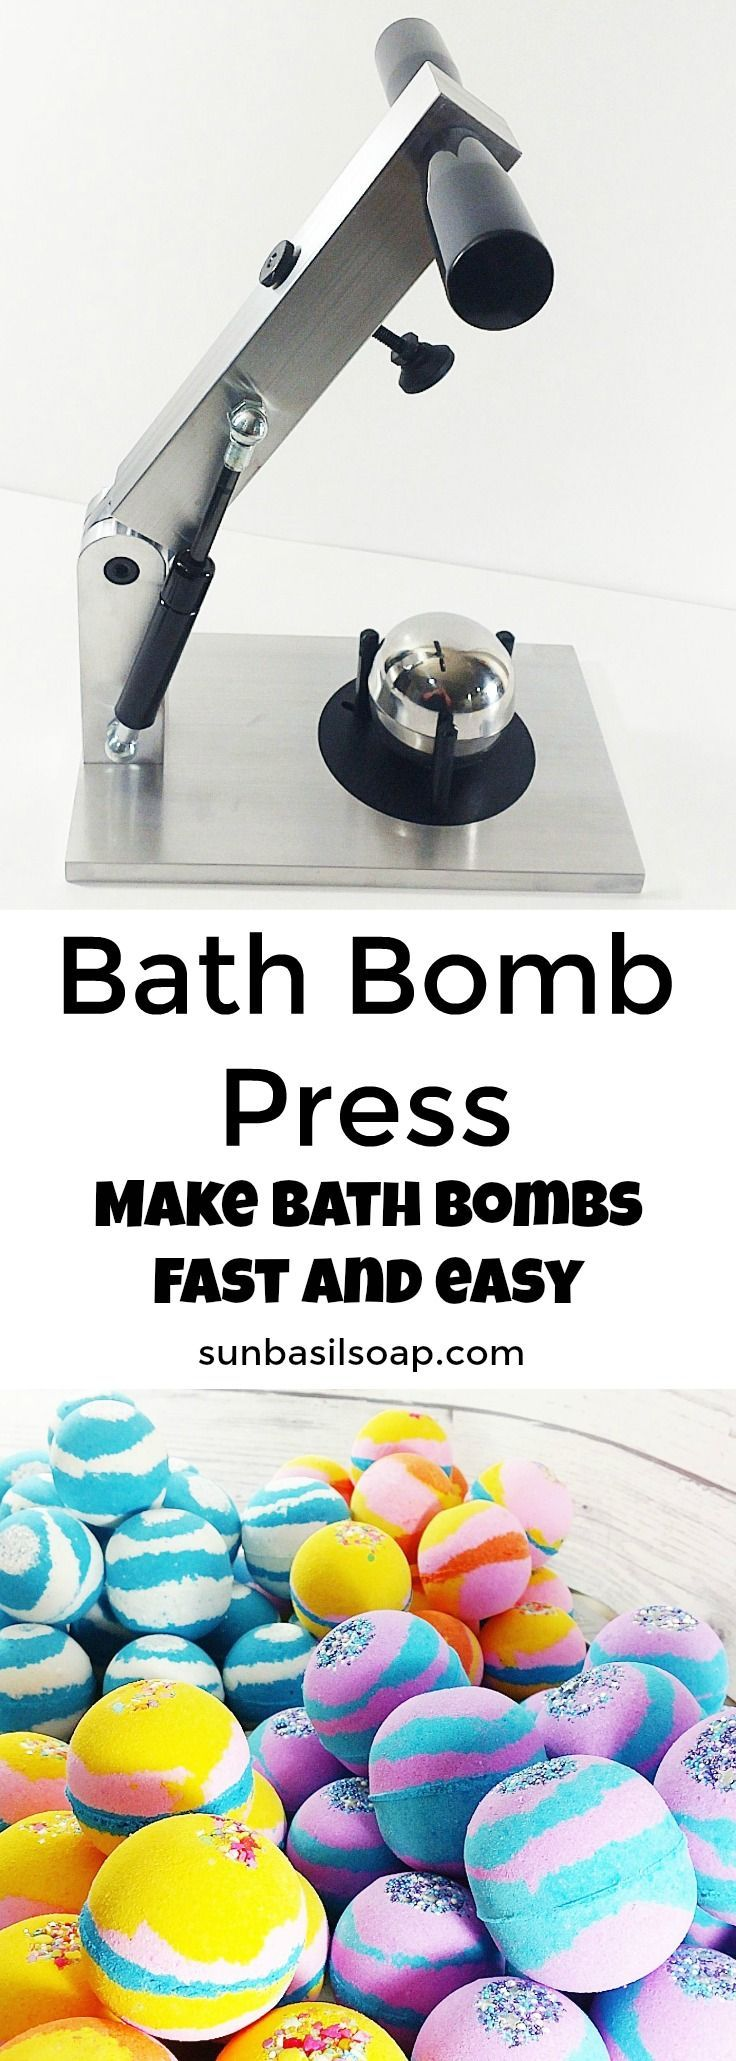 Make bath bombs easier and faster with a bath bomb press